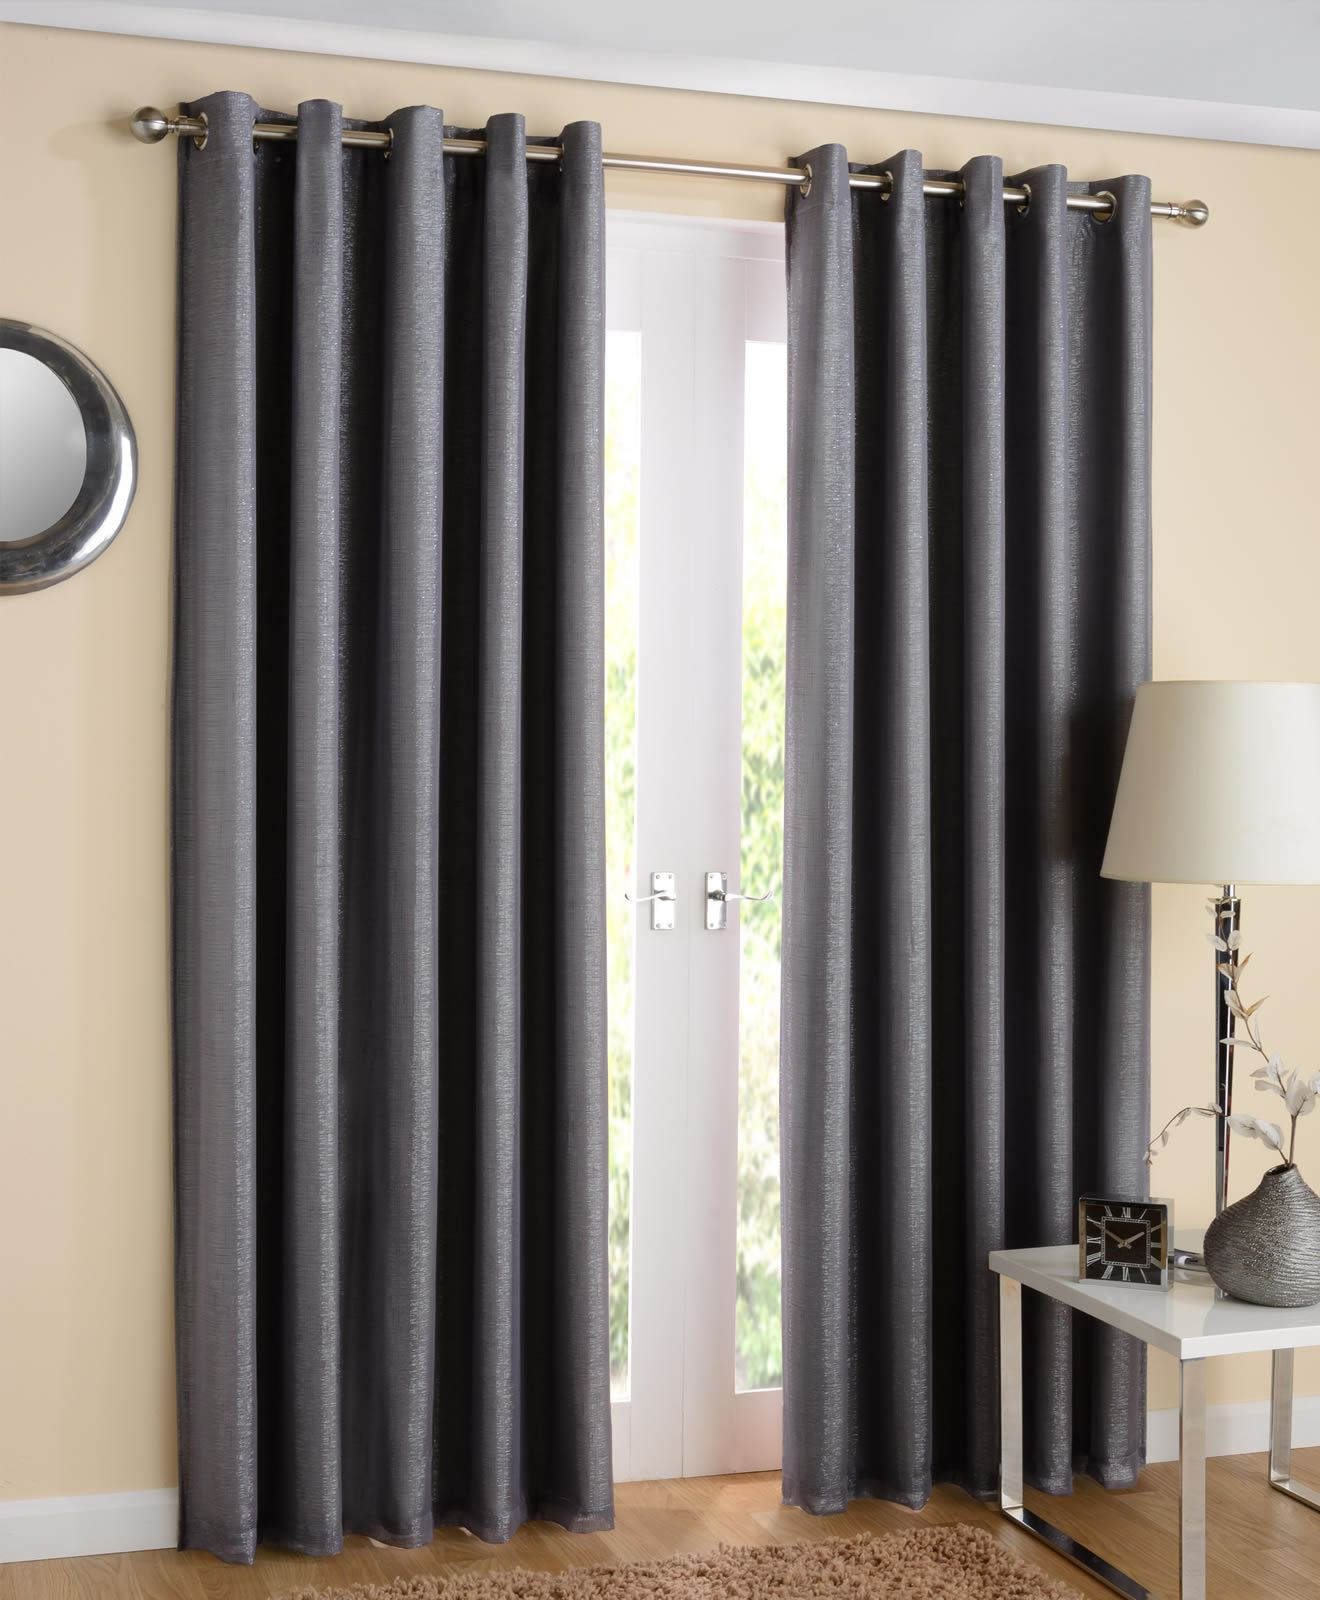 Thermal curtains grey - Santiago Eyelet Curtains Sparkle Lined Voiles Ready Made